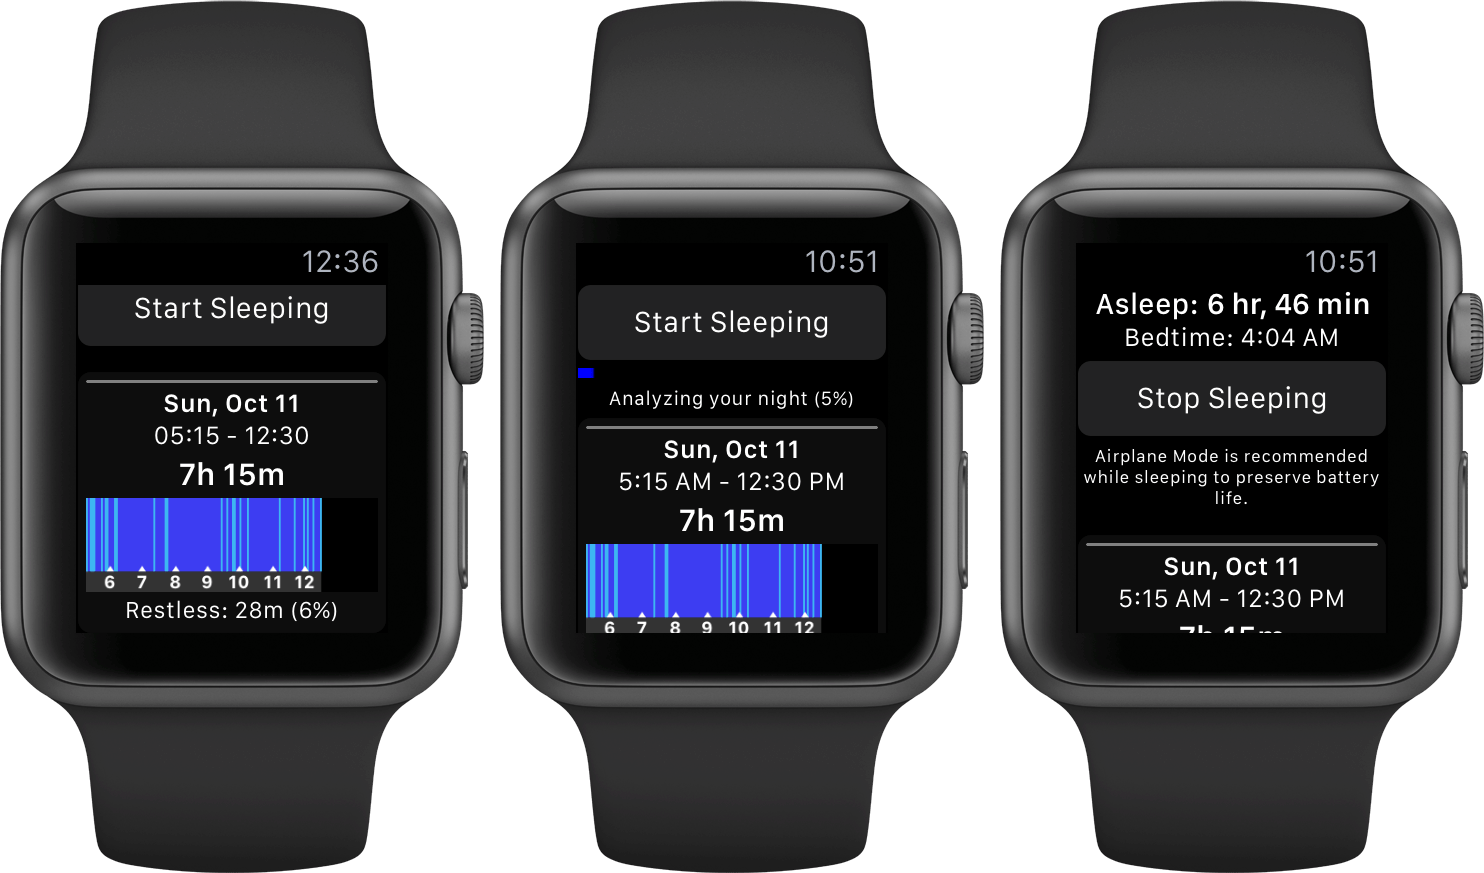 Sleep++ on Apple Watch.